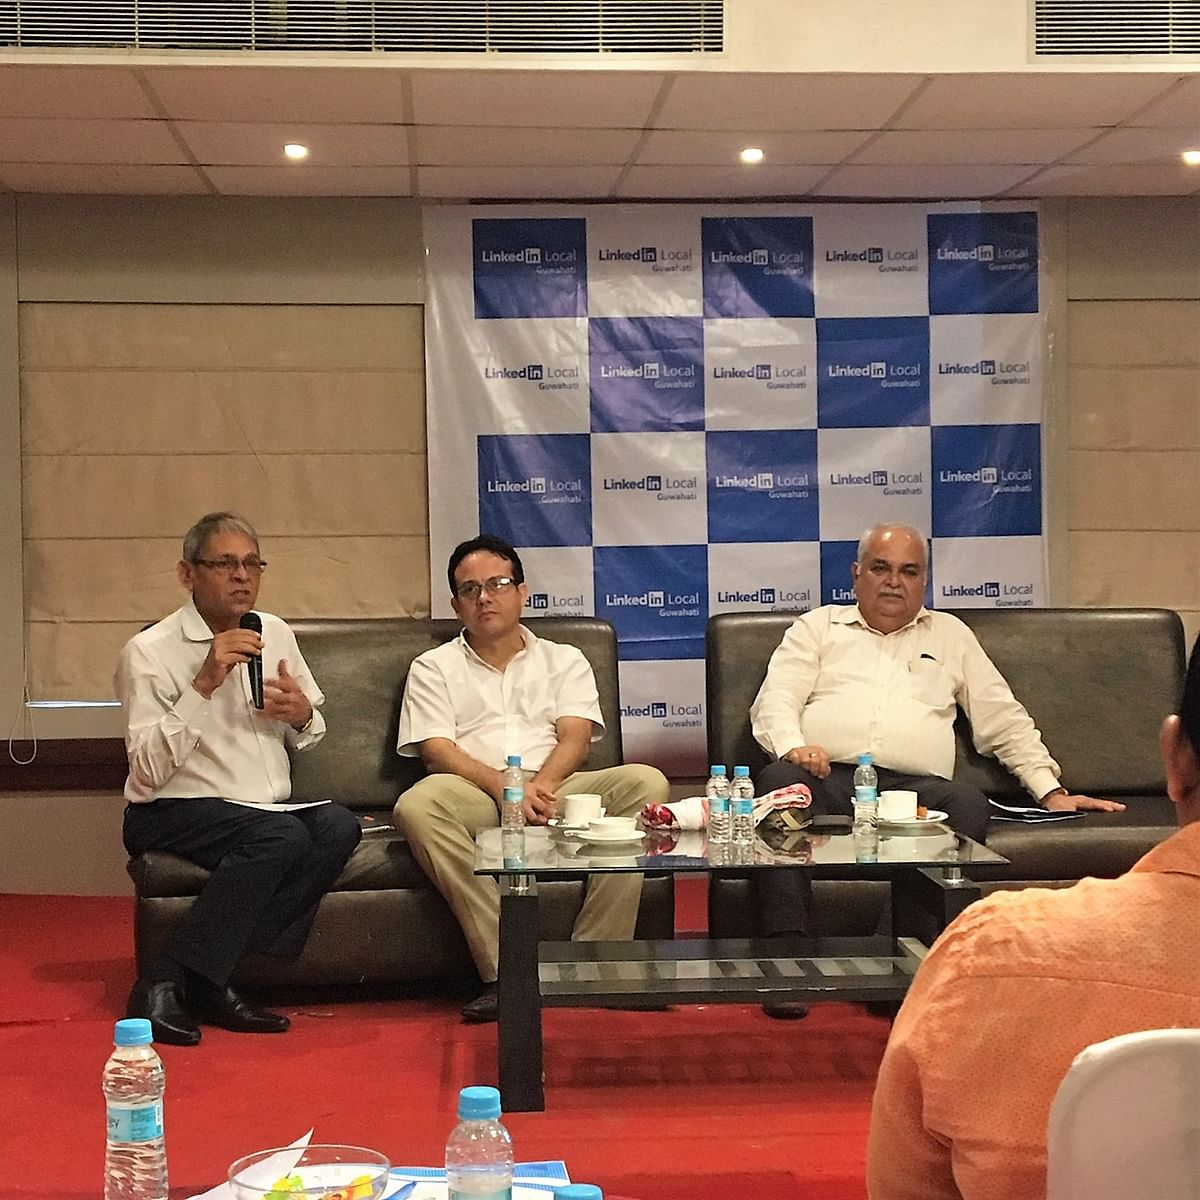 (From left) Freelance corporate trainer Sanjay Kedia; Flugelsoft Group of Companies MD & CEO Kalyanjit Hatibaruah; and Guwahati Management Association director Parag Phukan during a panel discussion on 'Essence of Networking' in Guwahati, Assam on Saturday